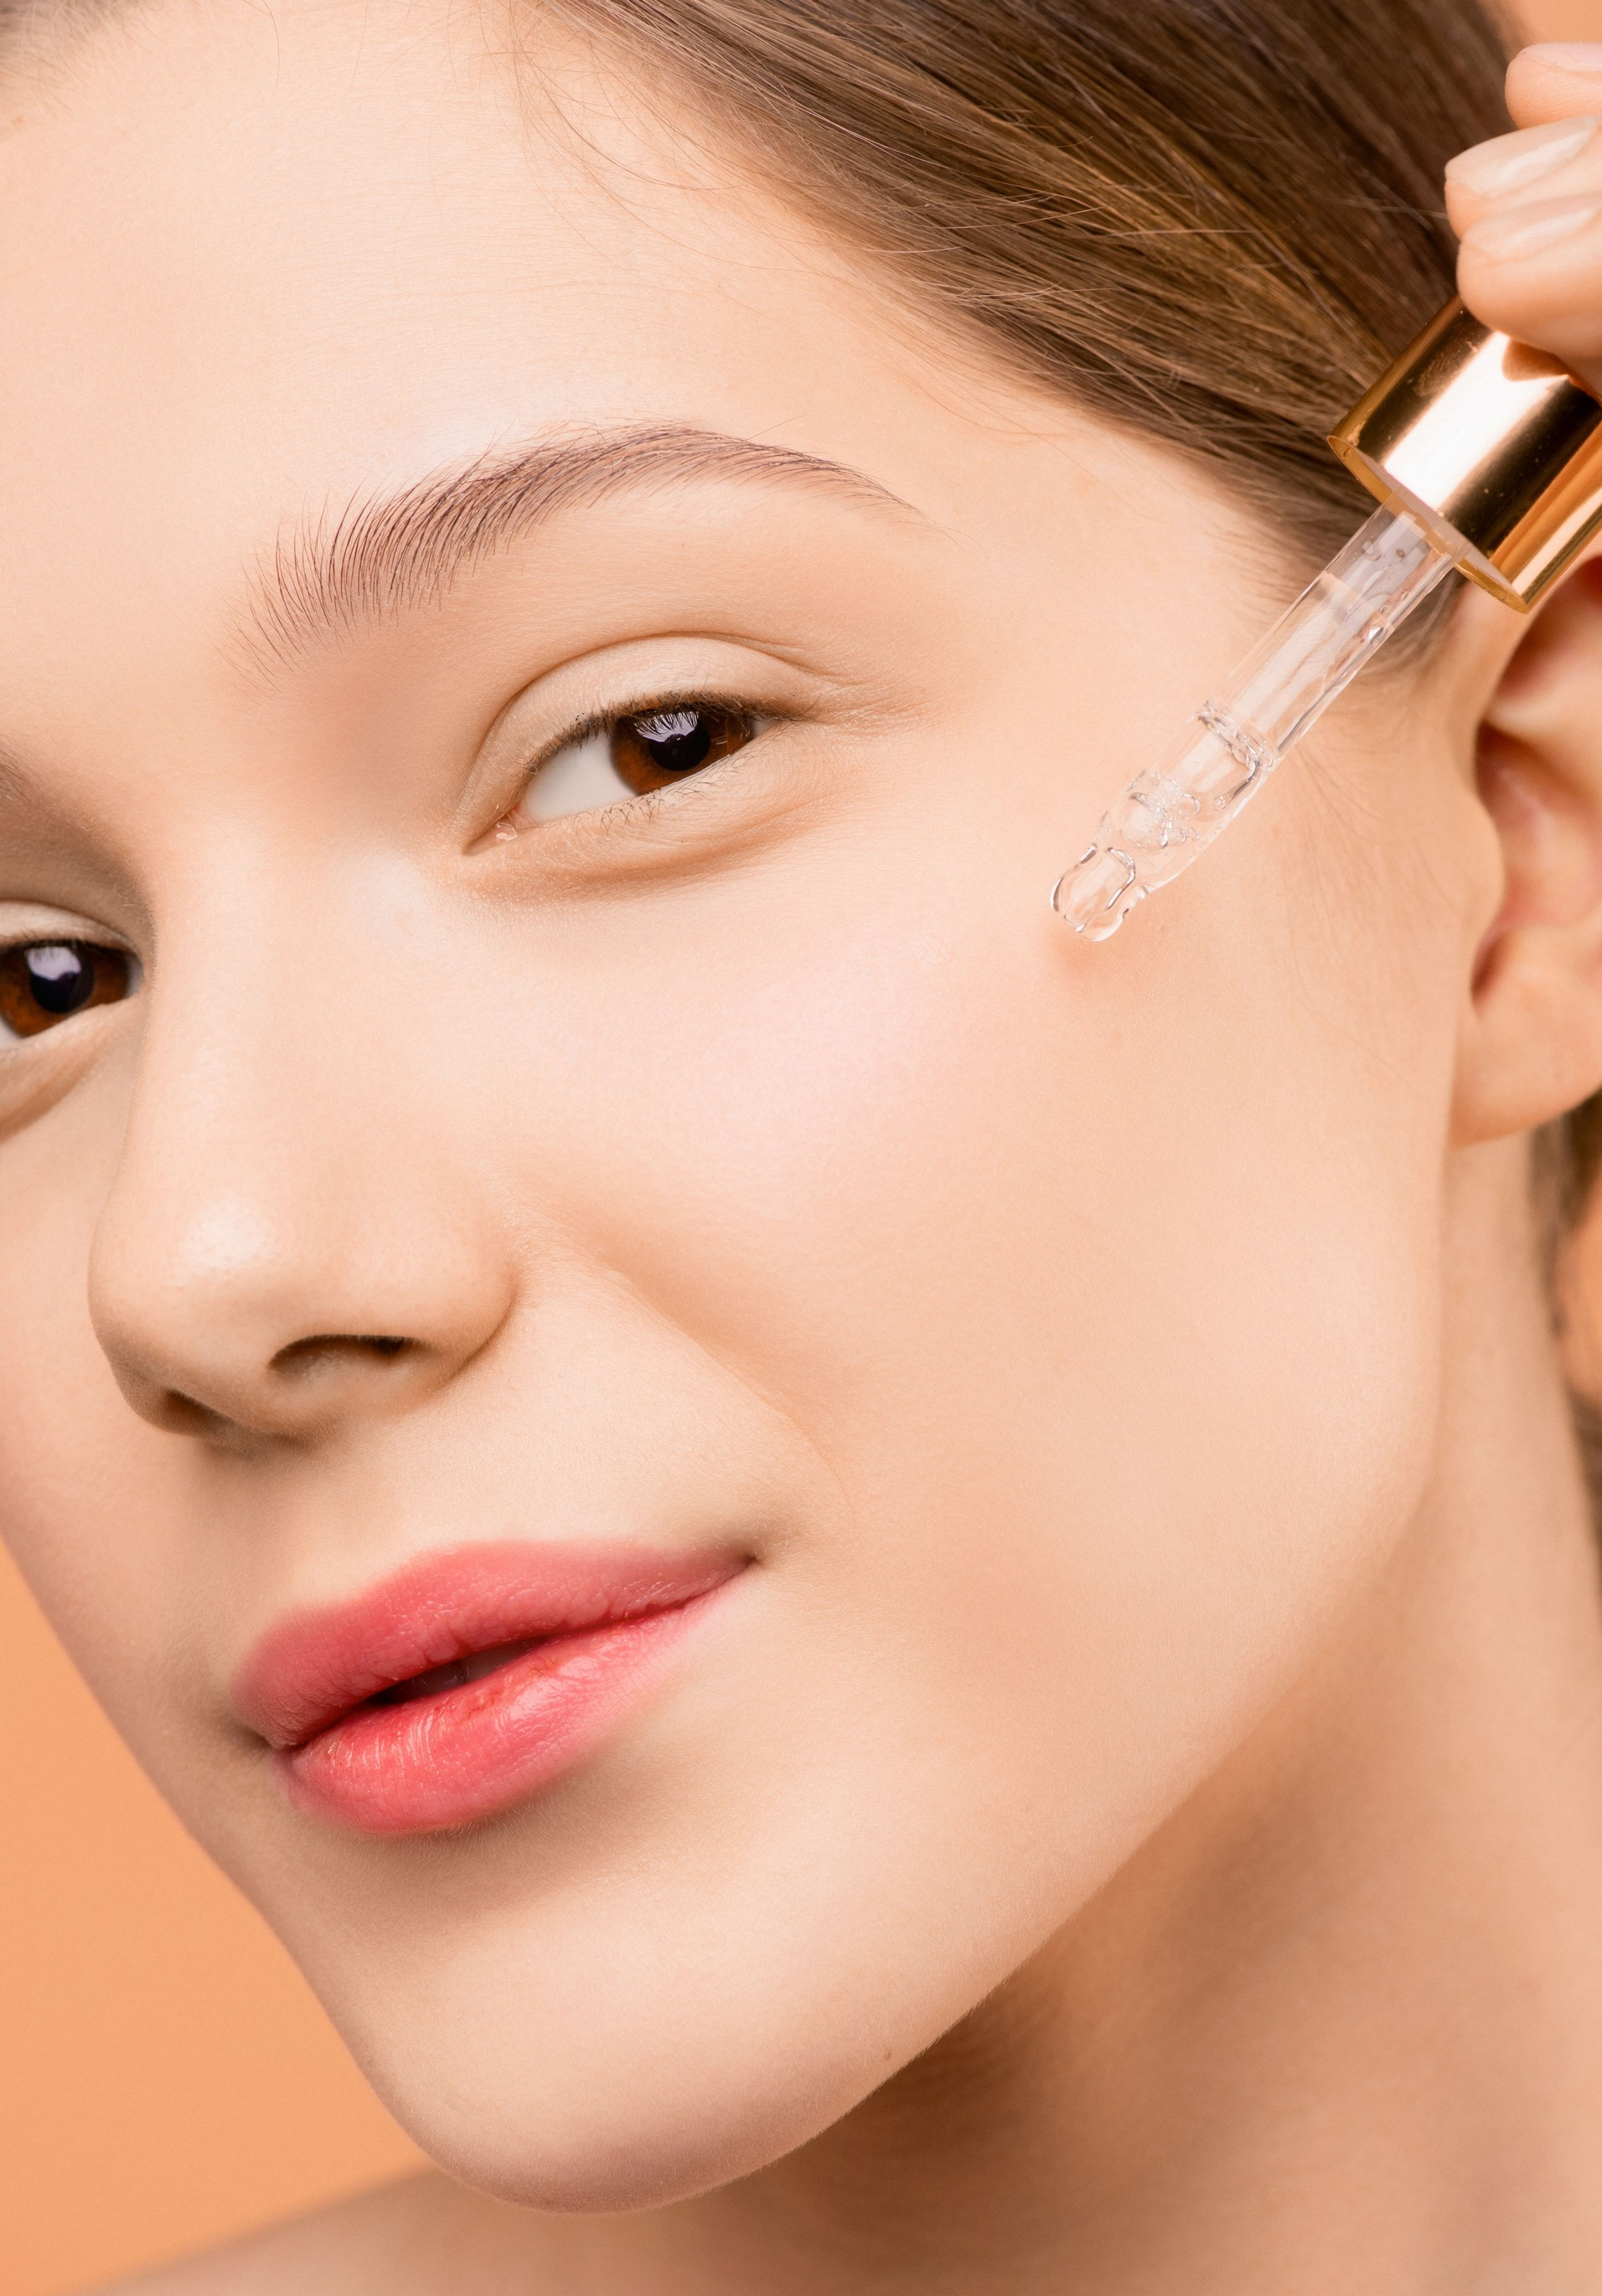 a woman applying facial oil to her skin/face